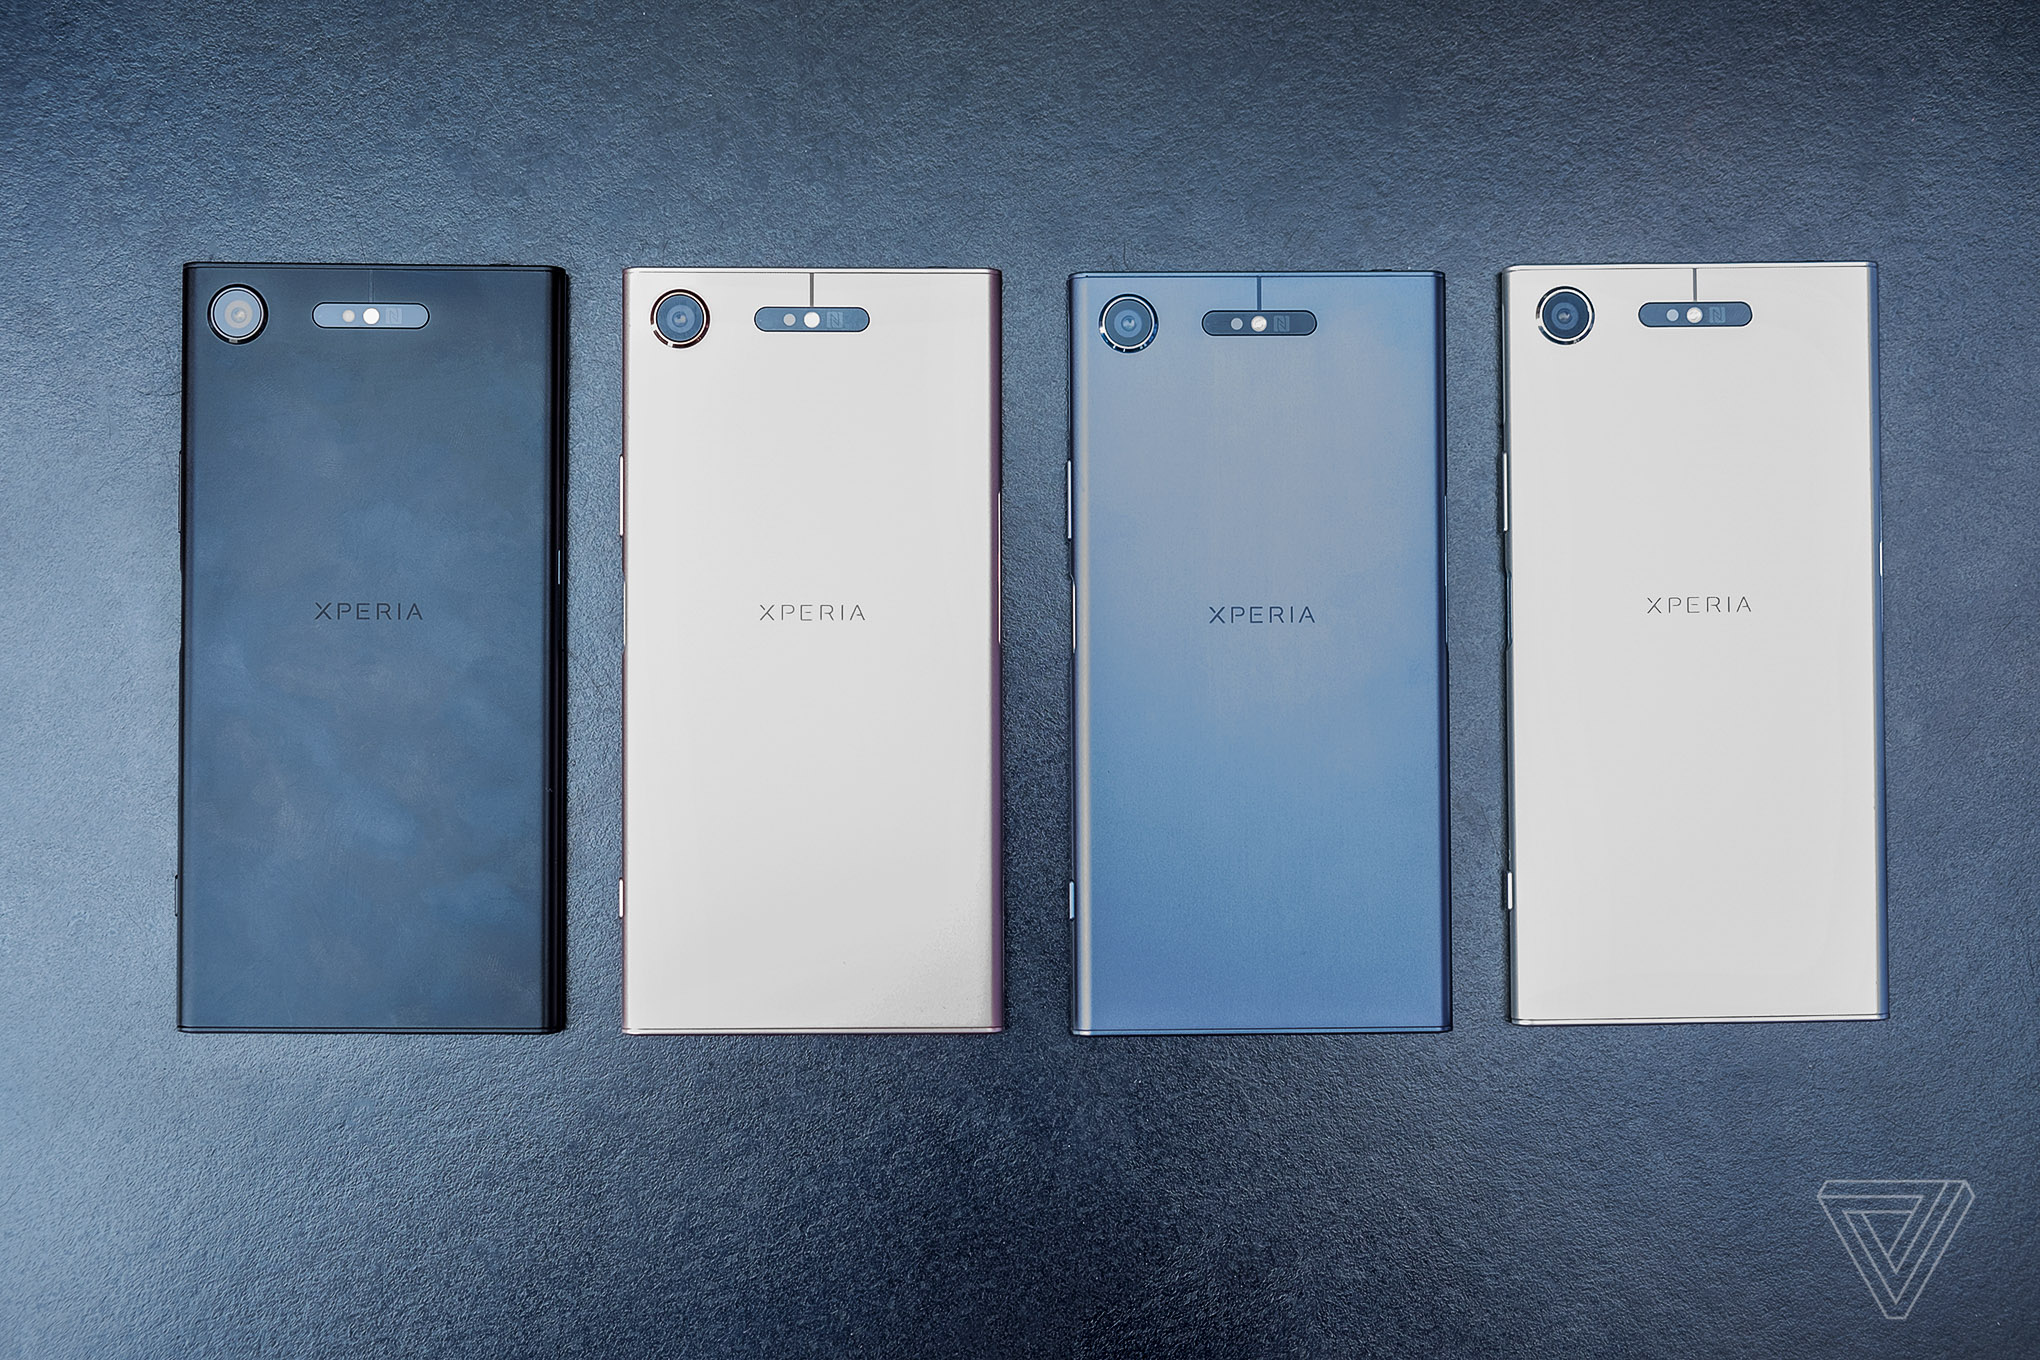 sony zx1 compact. sony xperia xz1 in four colors zx1 compact